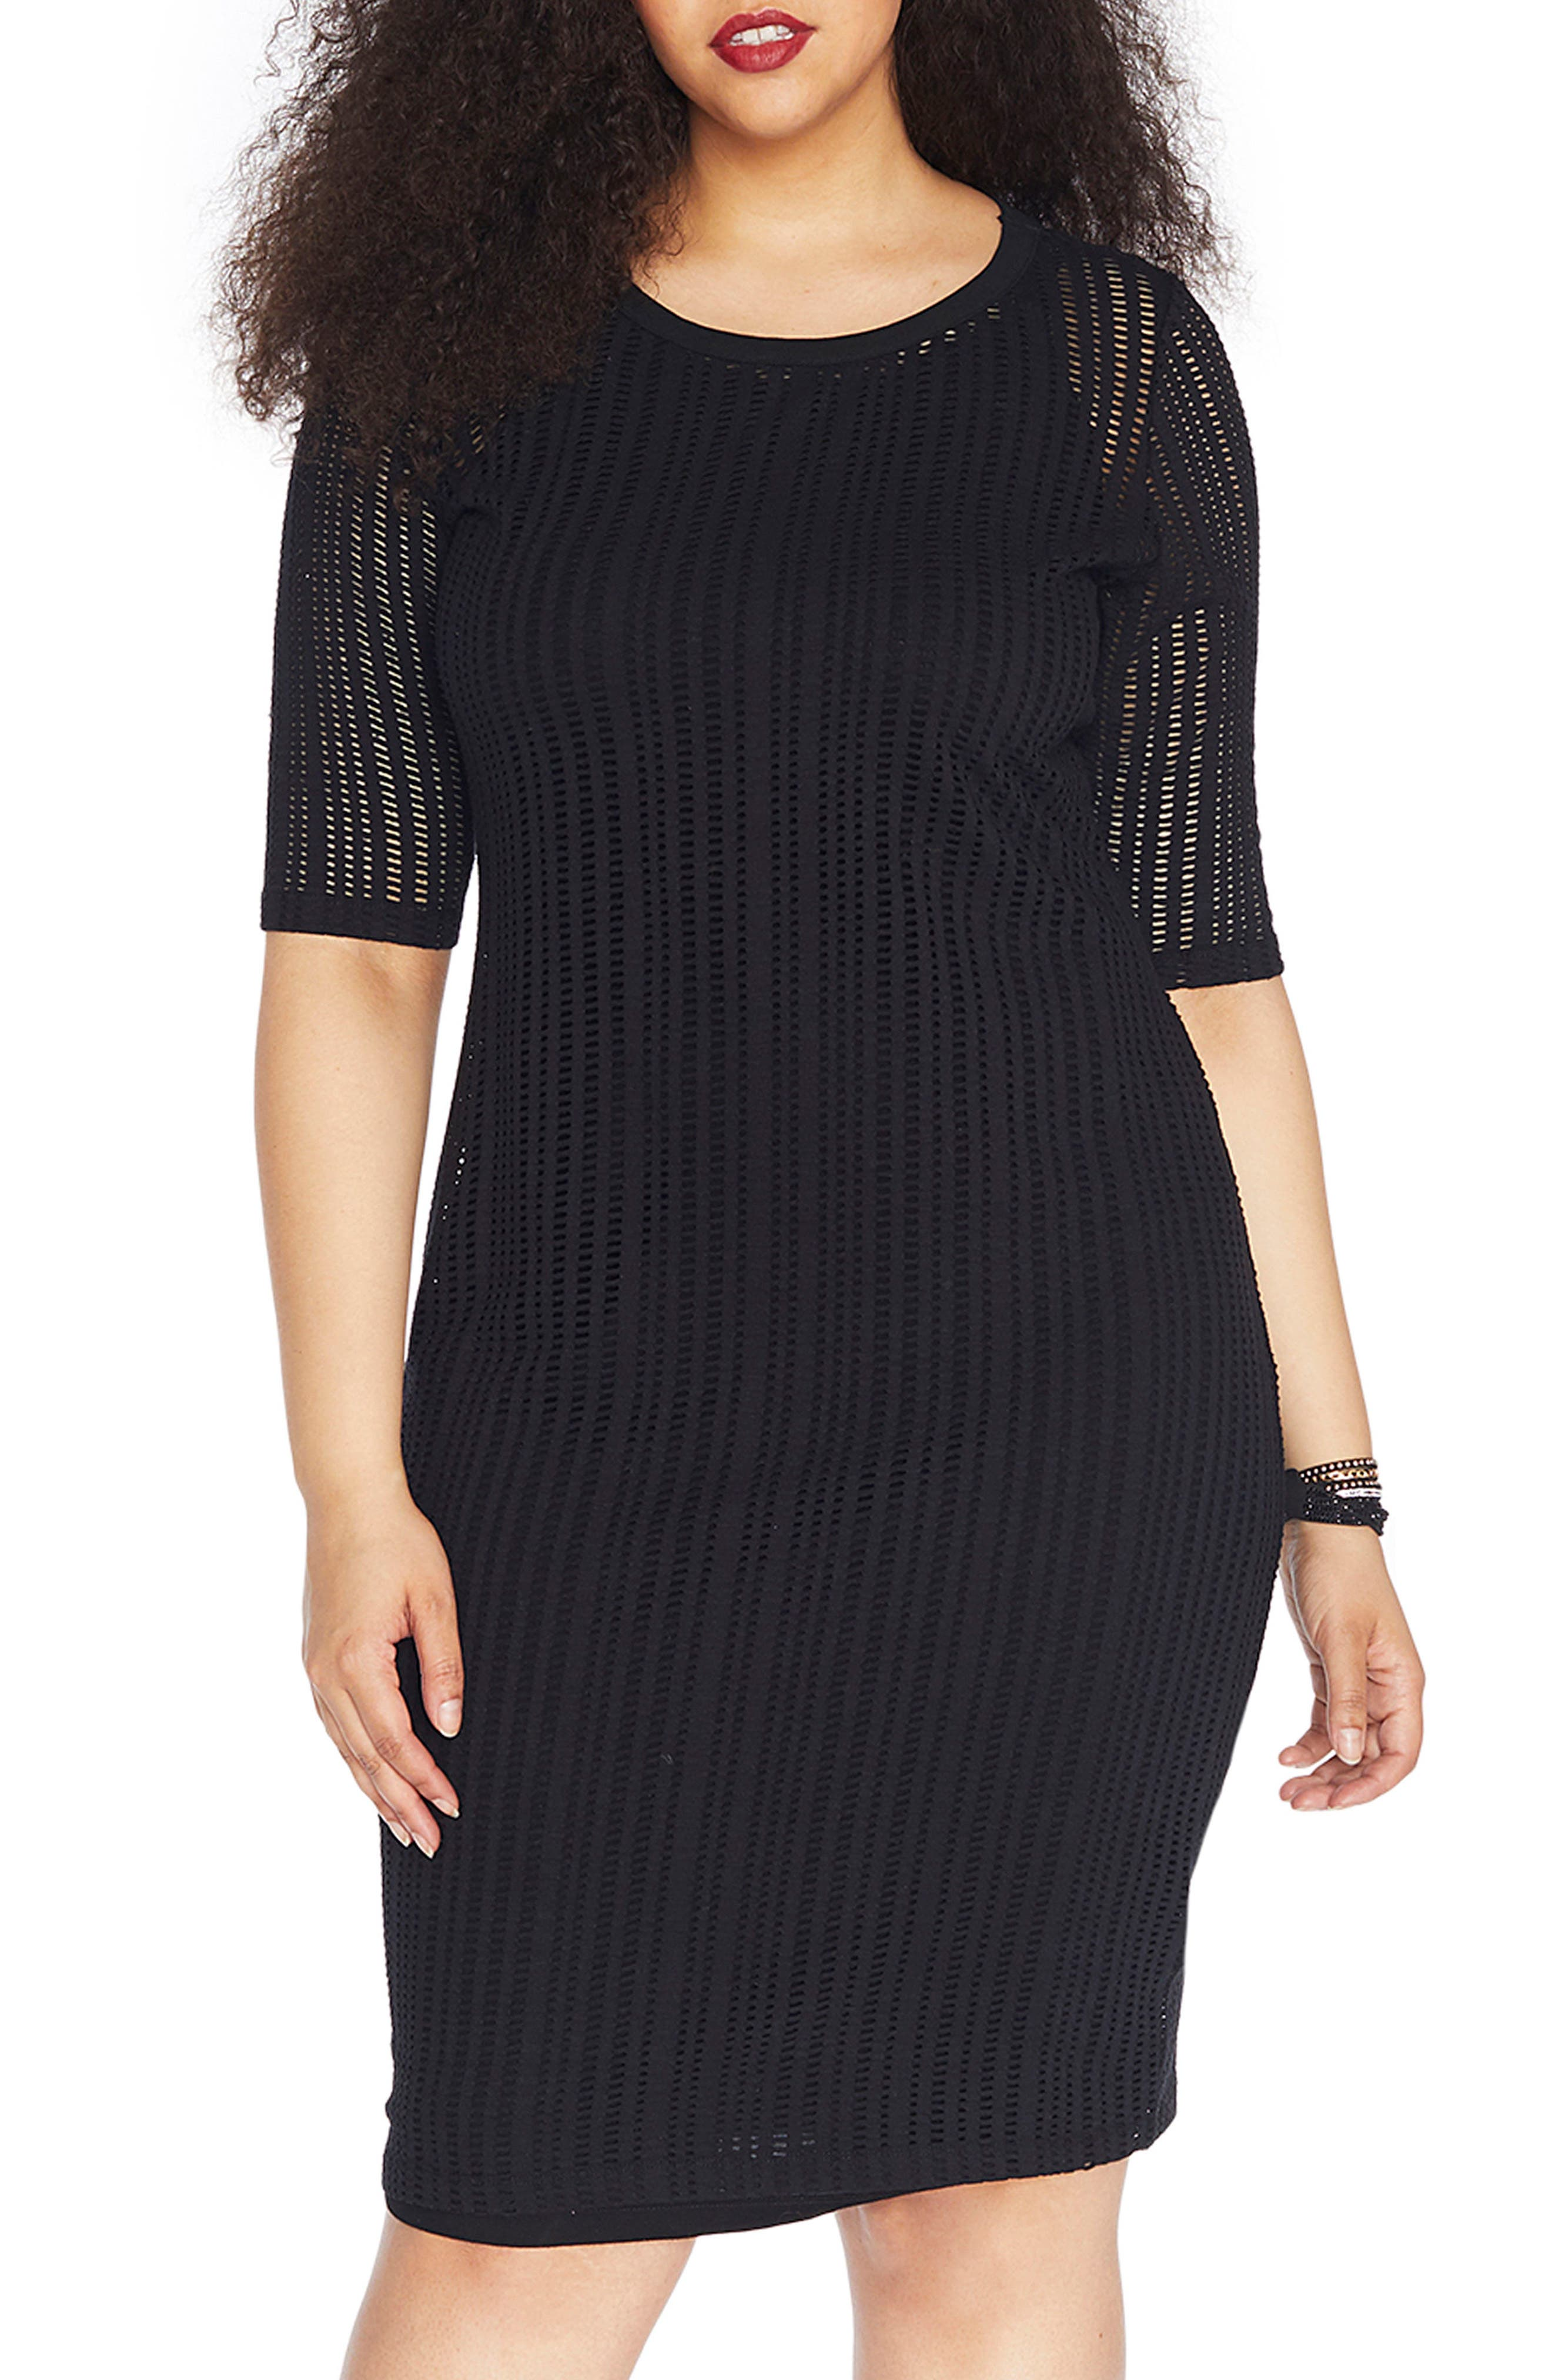 Alternate Image 1 Selected - REBEL WILSON X ANGELS Stretch Jacquard Sheath Dress (Plus Size)